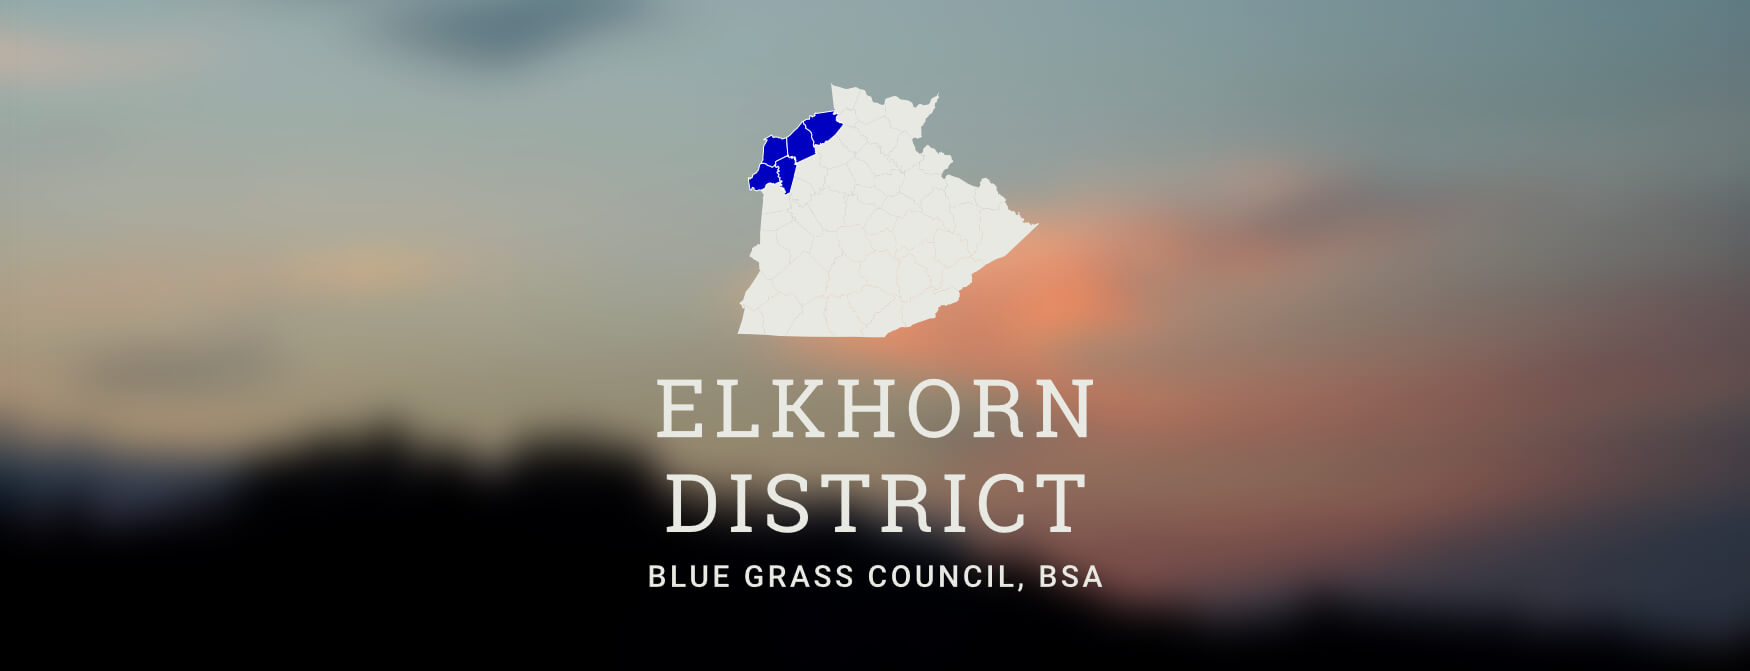 Elkhorn District